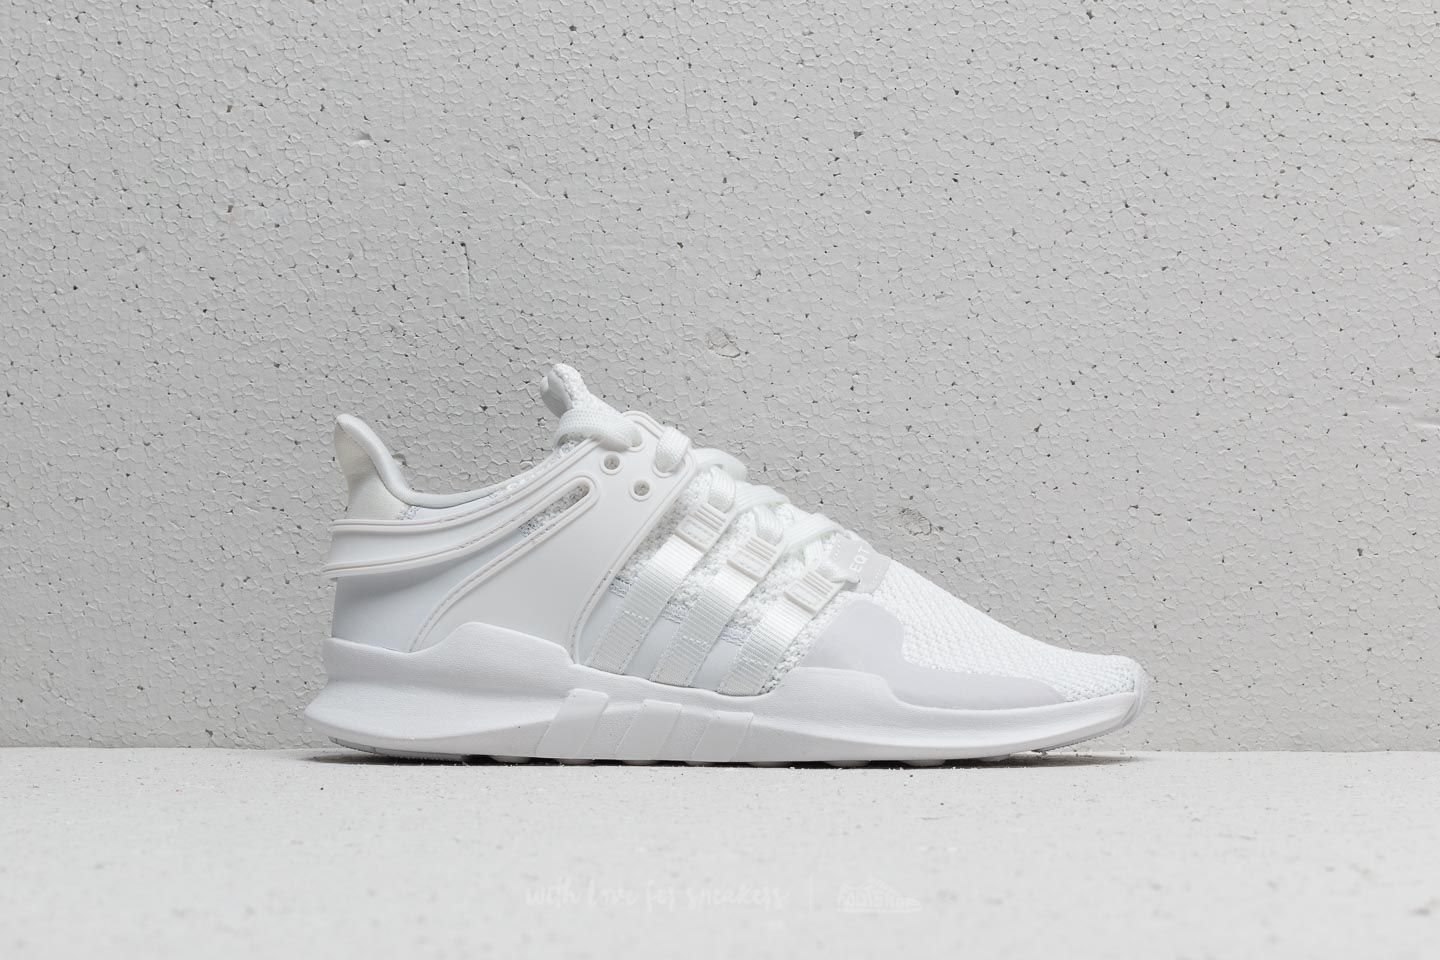 quality design 97323 af898 adidas EQT Support ADV Cloud White Cloud White Cloud White at a great  price